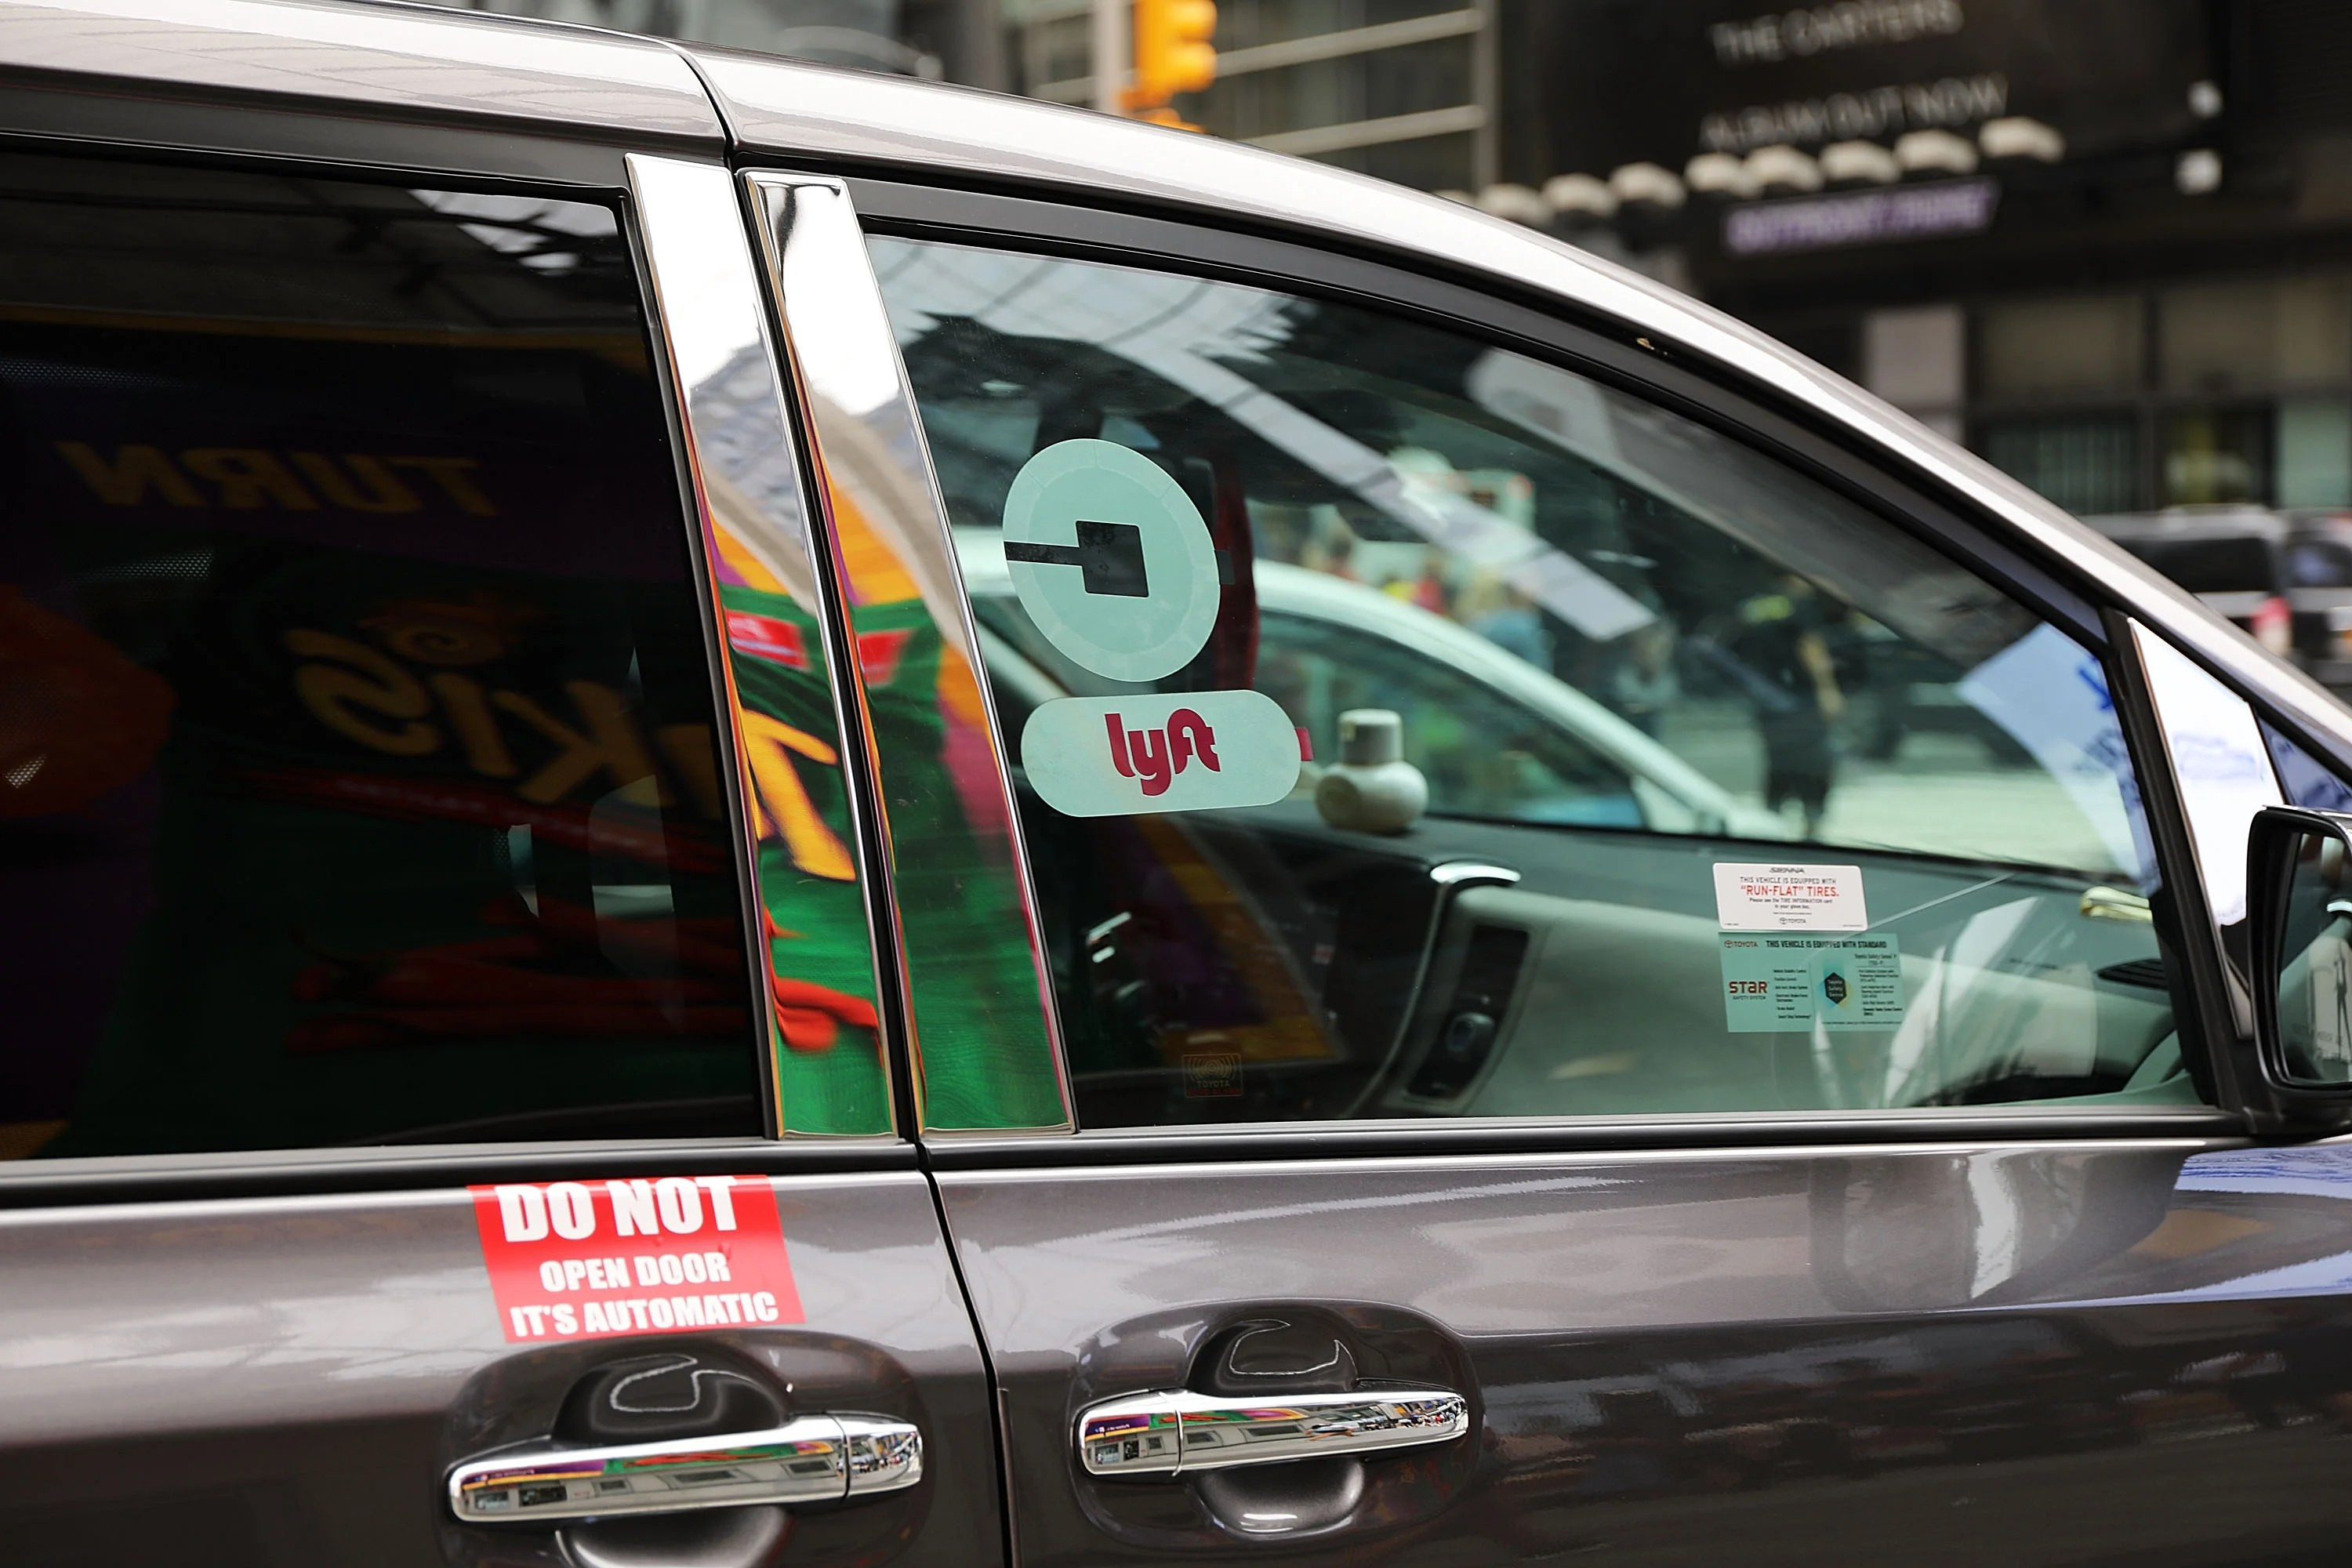 The Critical Points: Why I now avoid ride-hailing services whenever I can